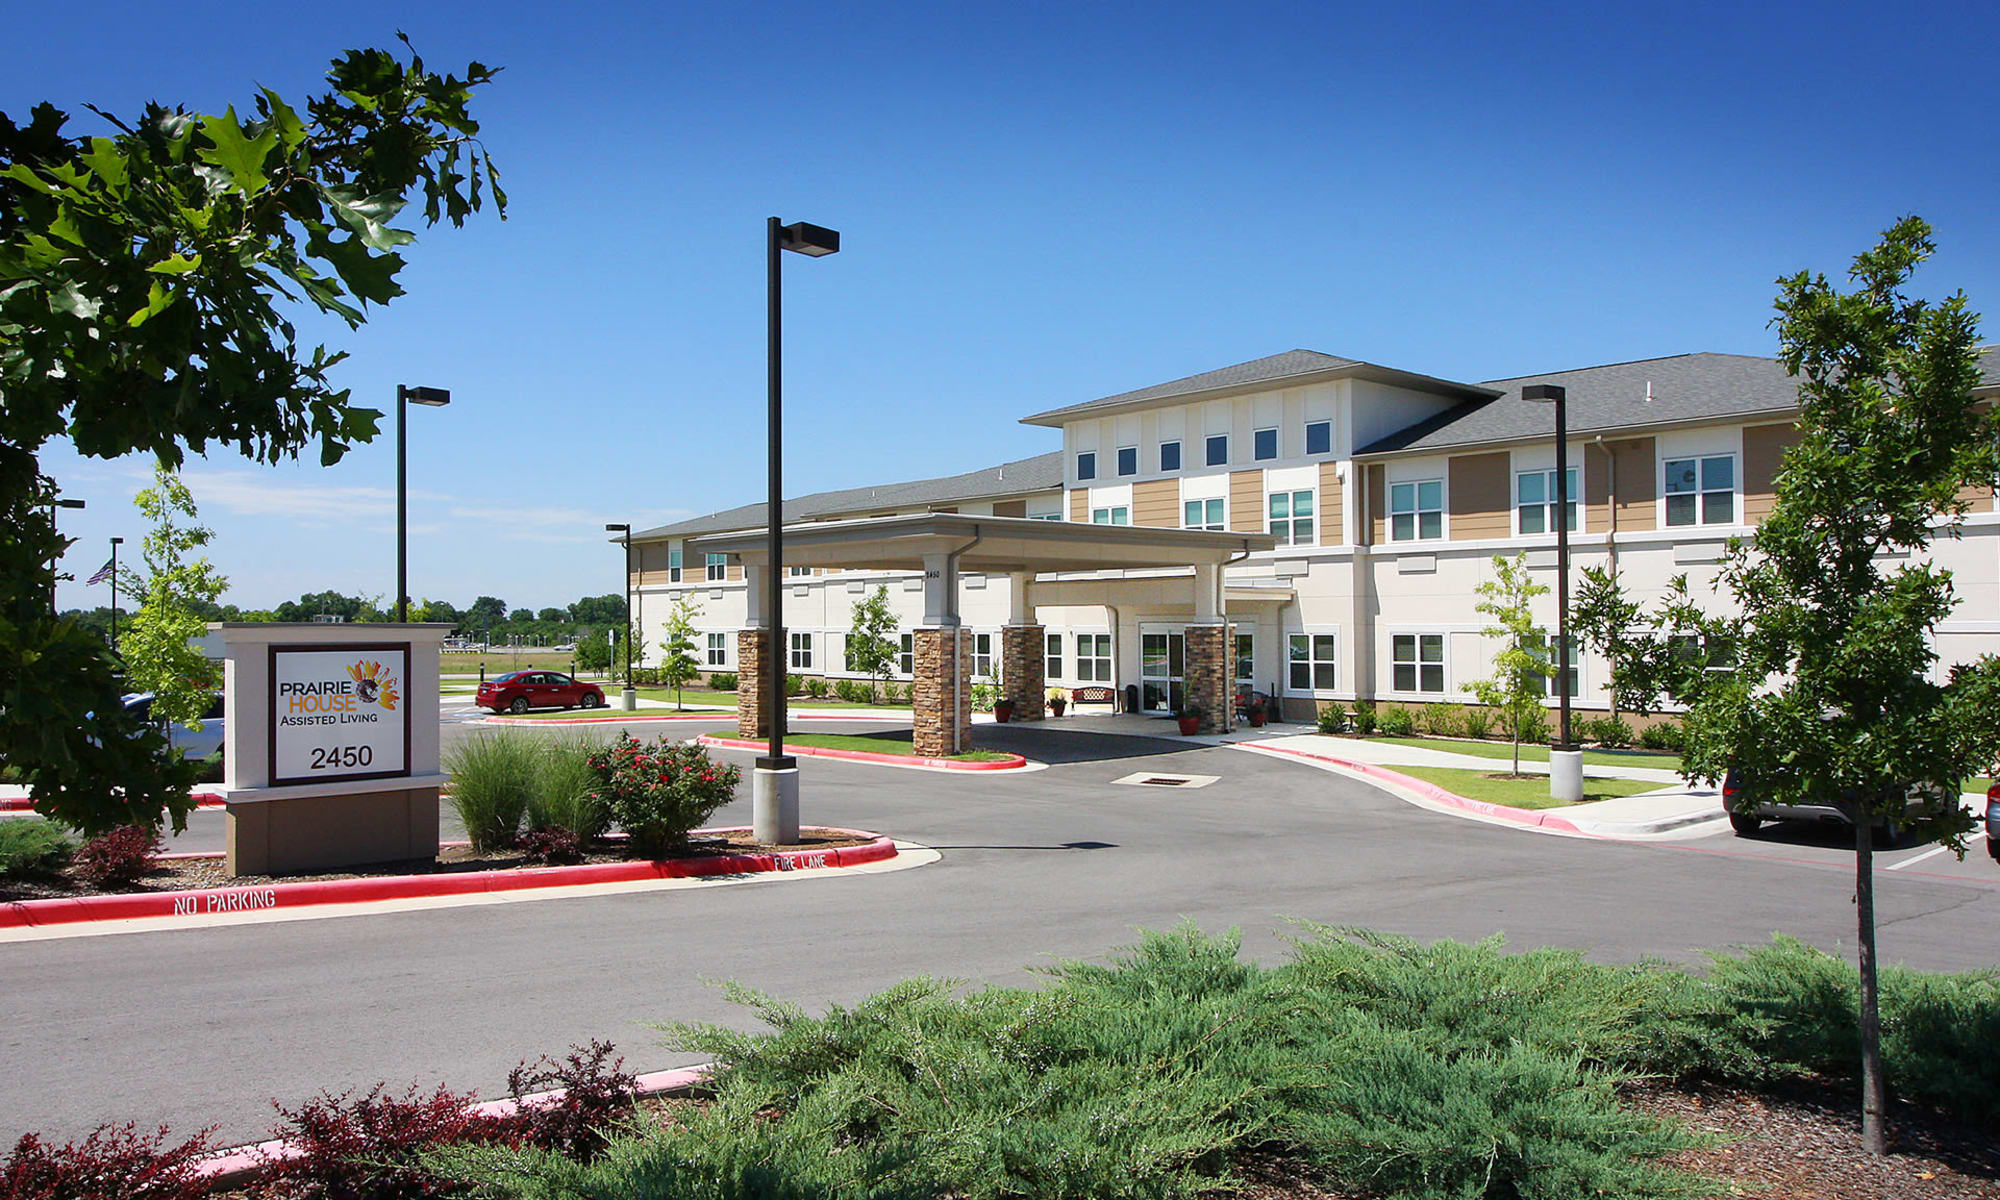 Prairie House Assisted Living and Memory Care in Broken Arrow, Oklahoma